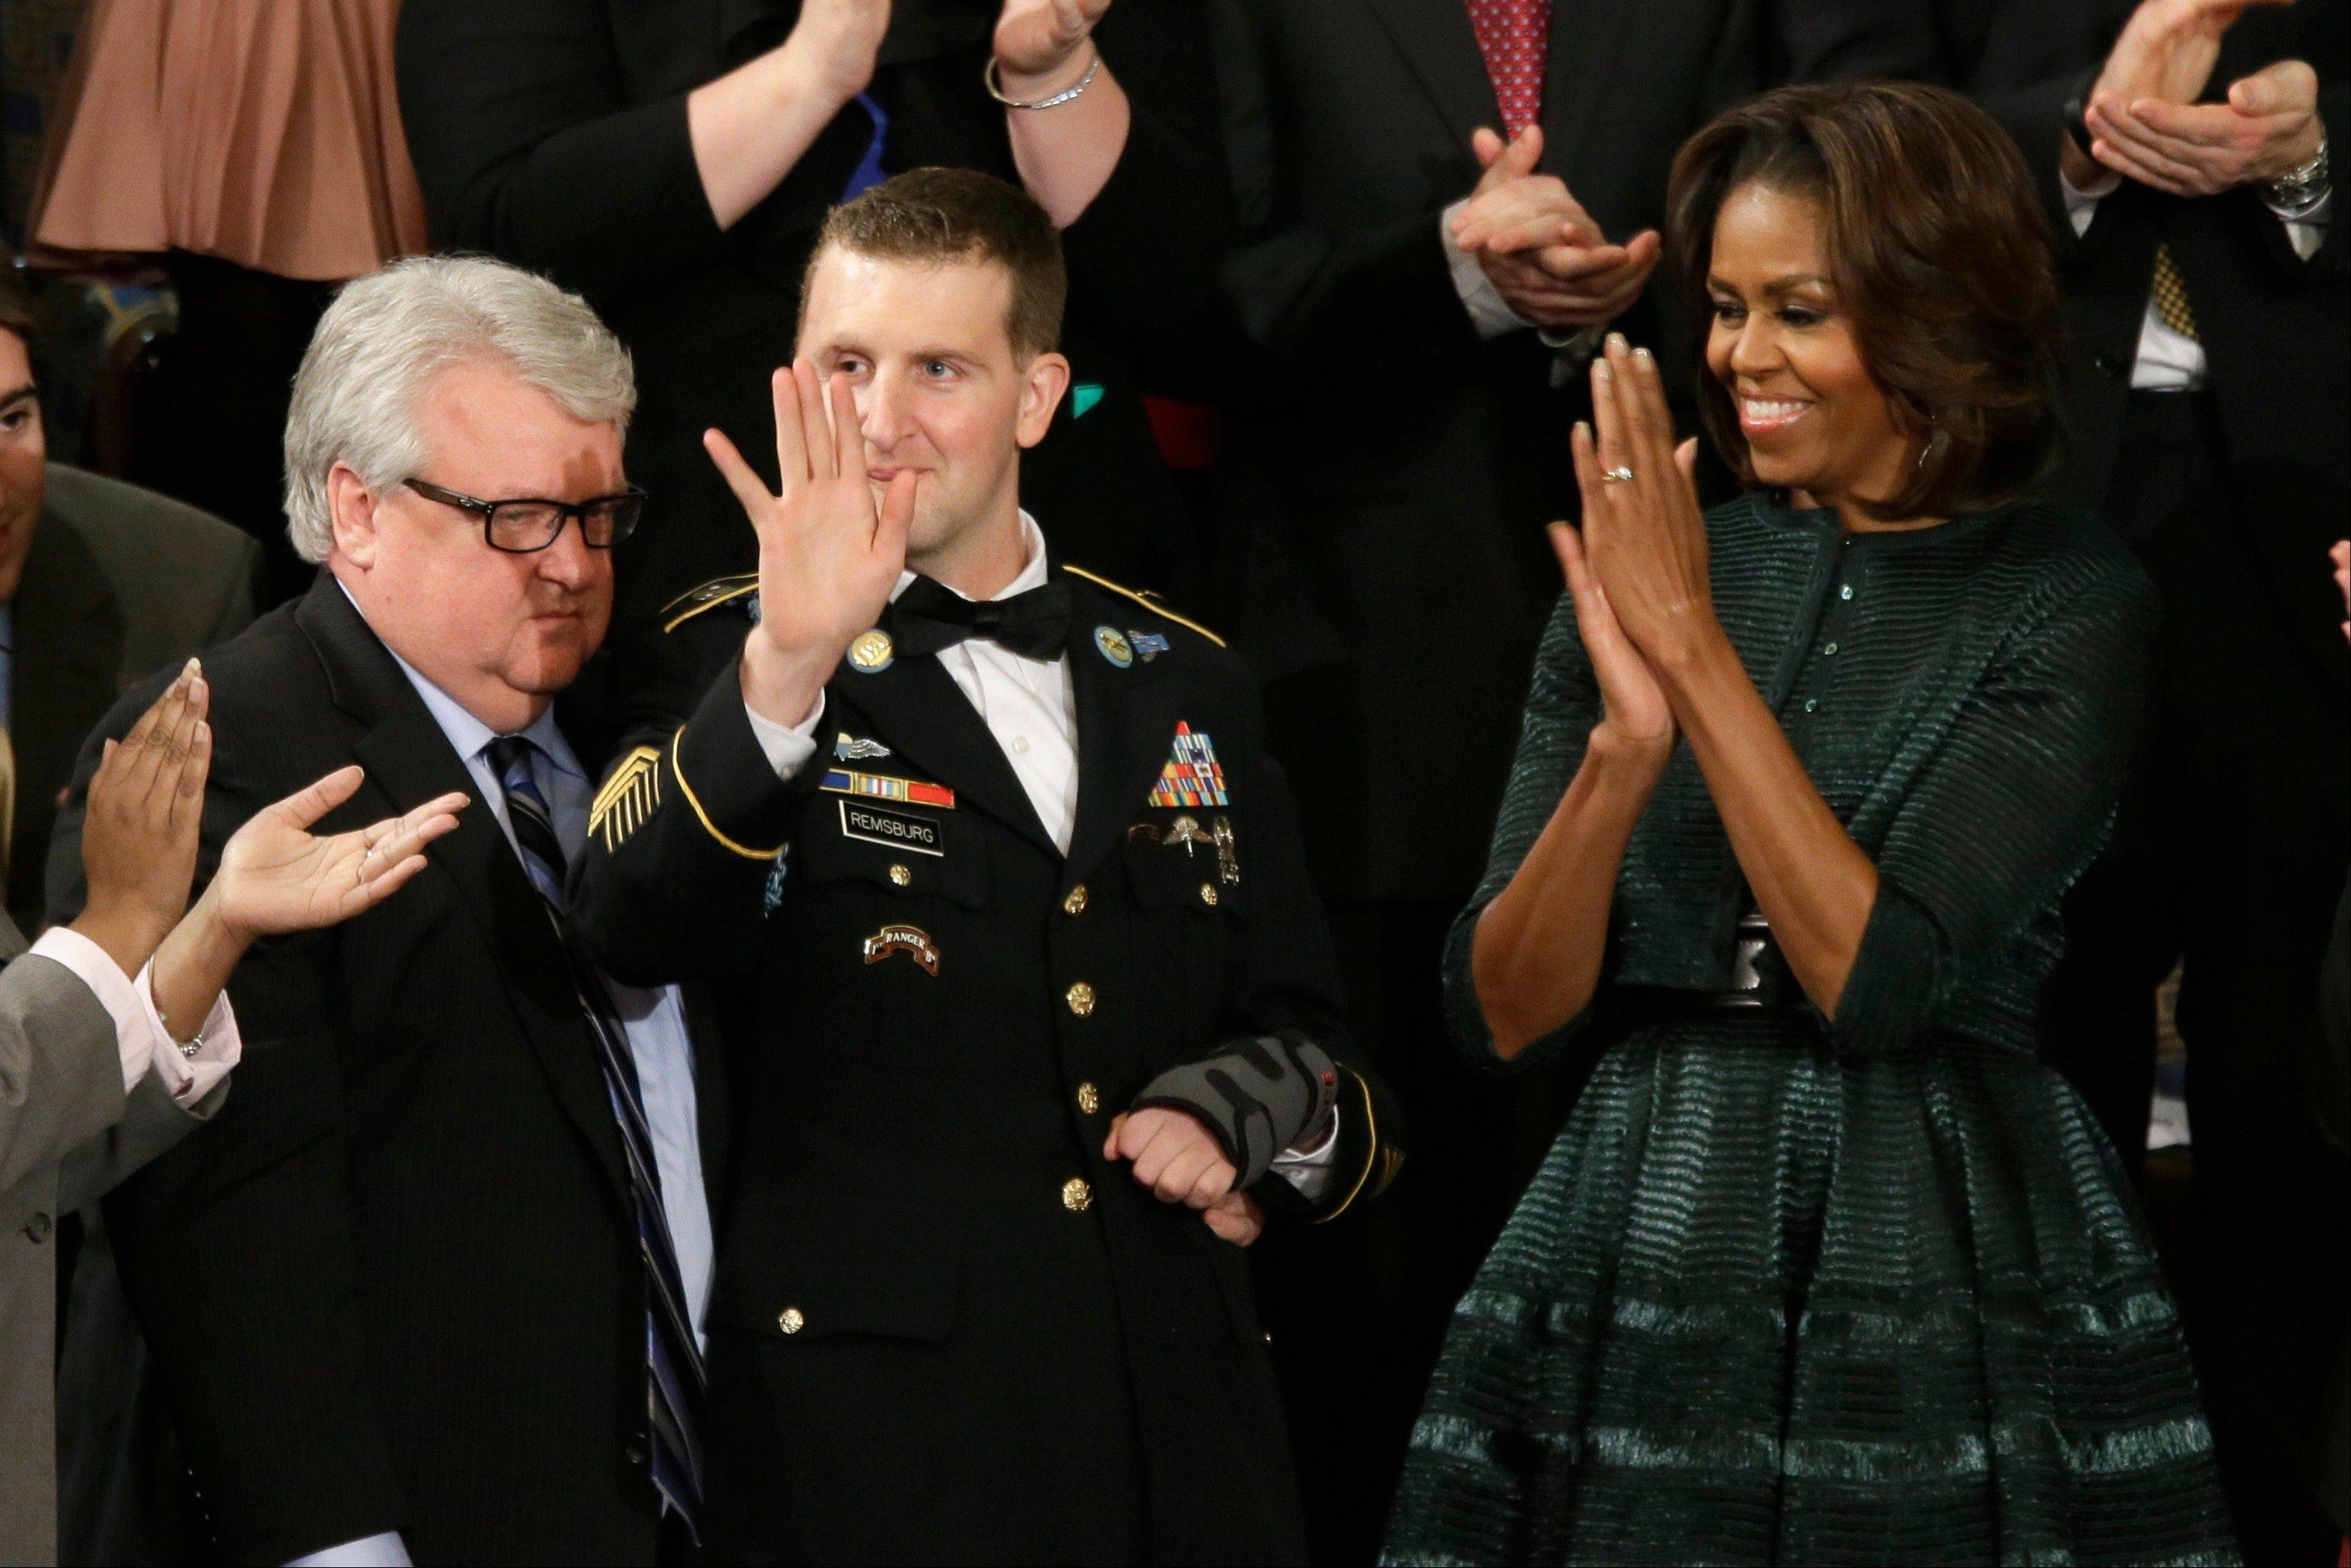 First lady Michelle Obama, and others, applaud Army Ranger Sgt. 1st Class Cory Remsburg, as President Barack Obama acknowledges him during his State of the Union address on Capitol Hill Tuesday.